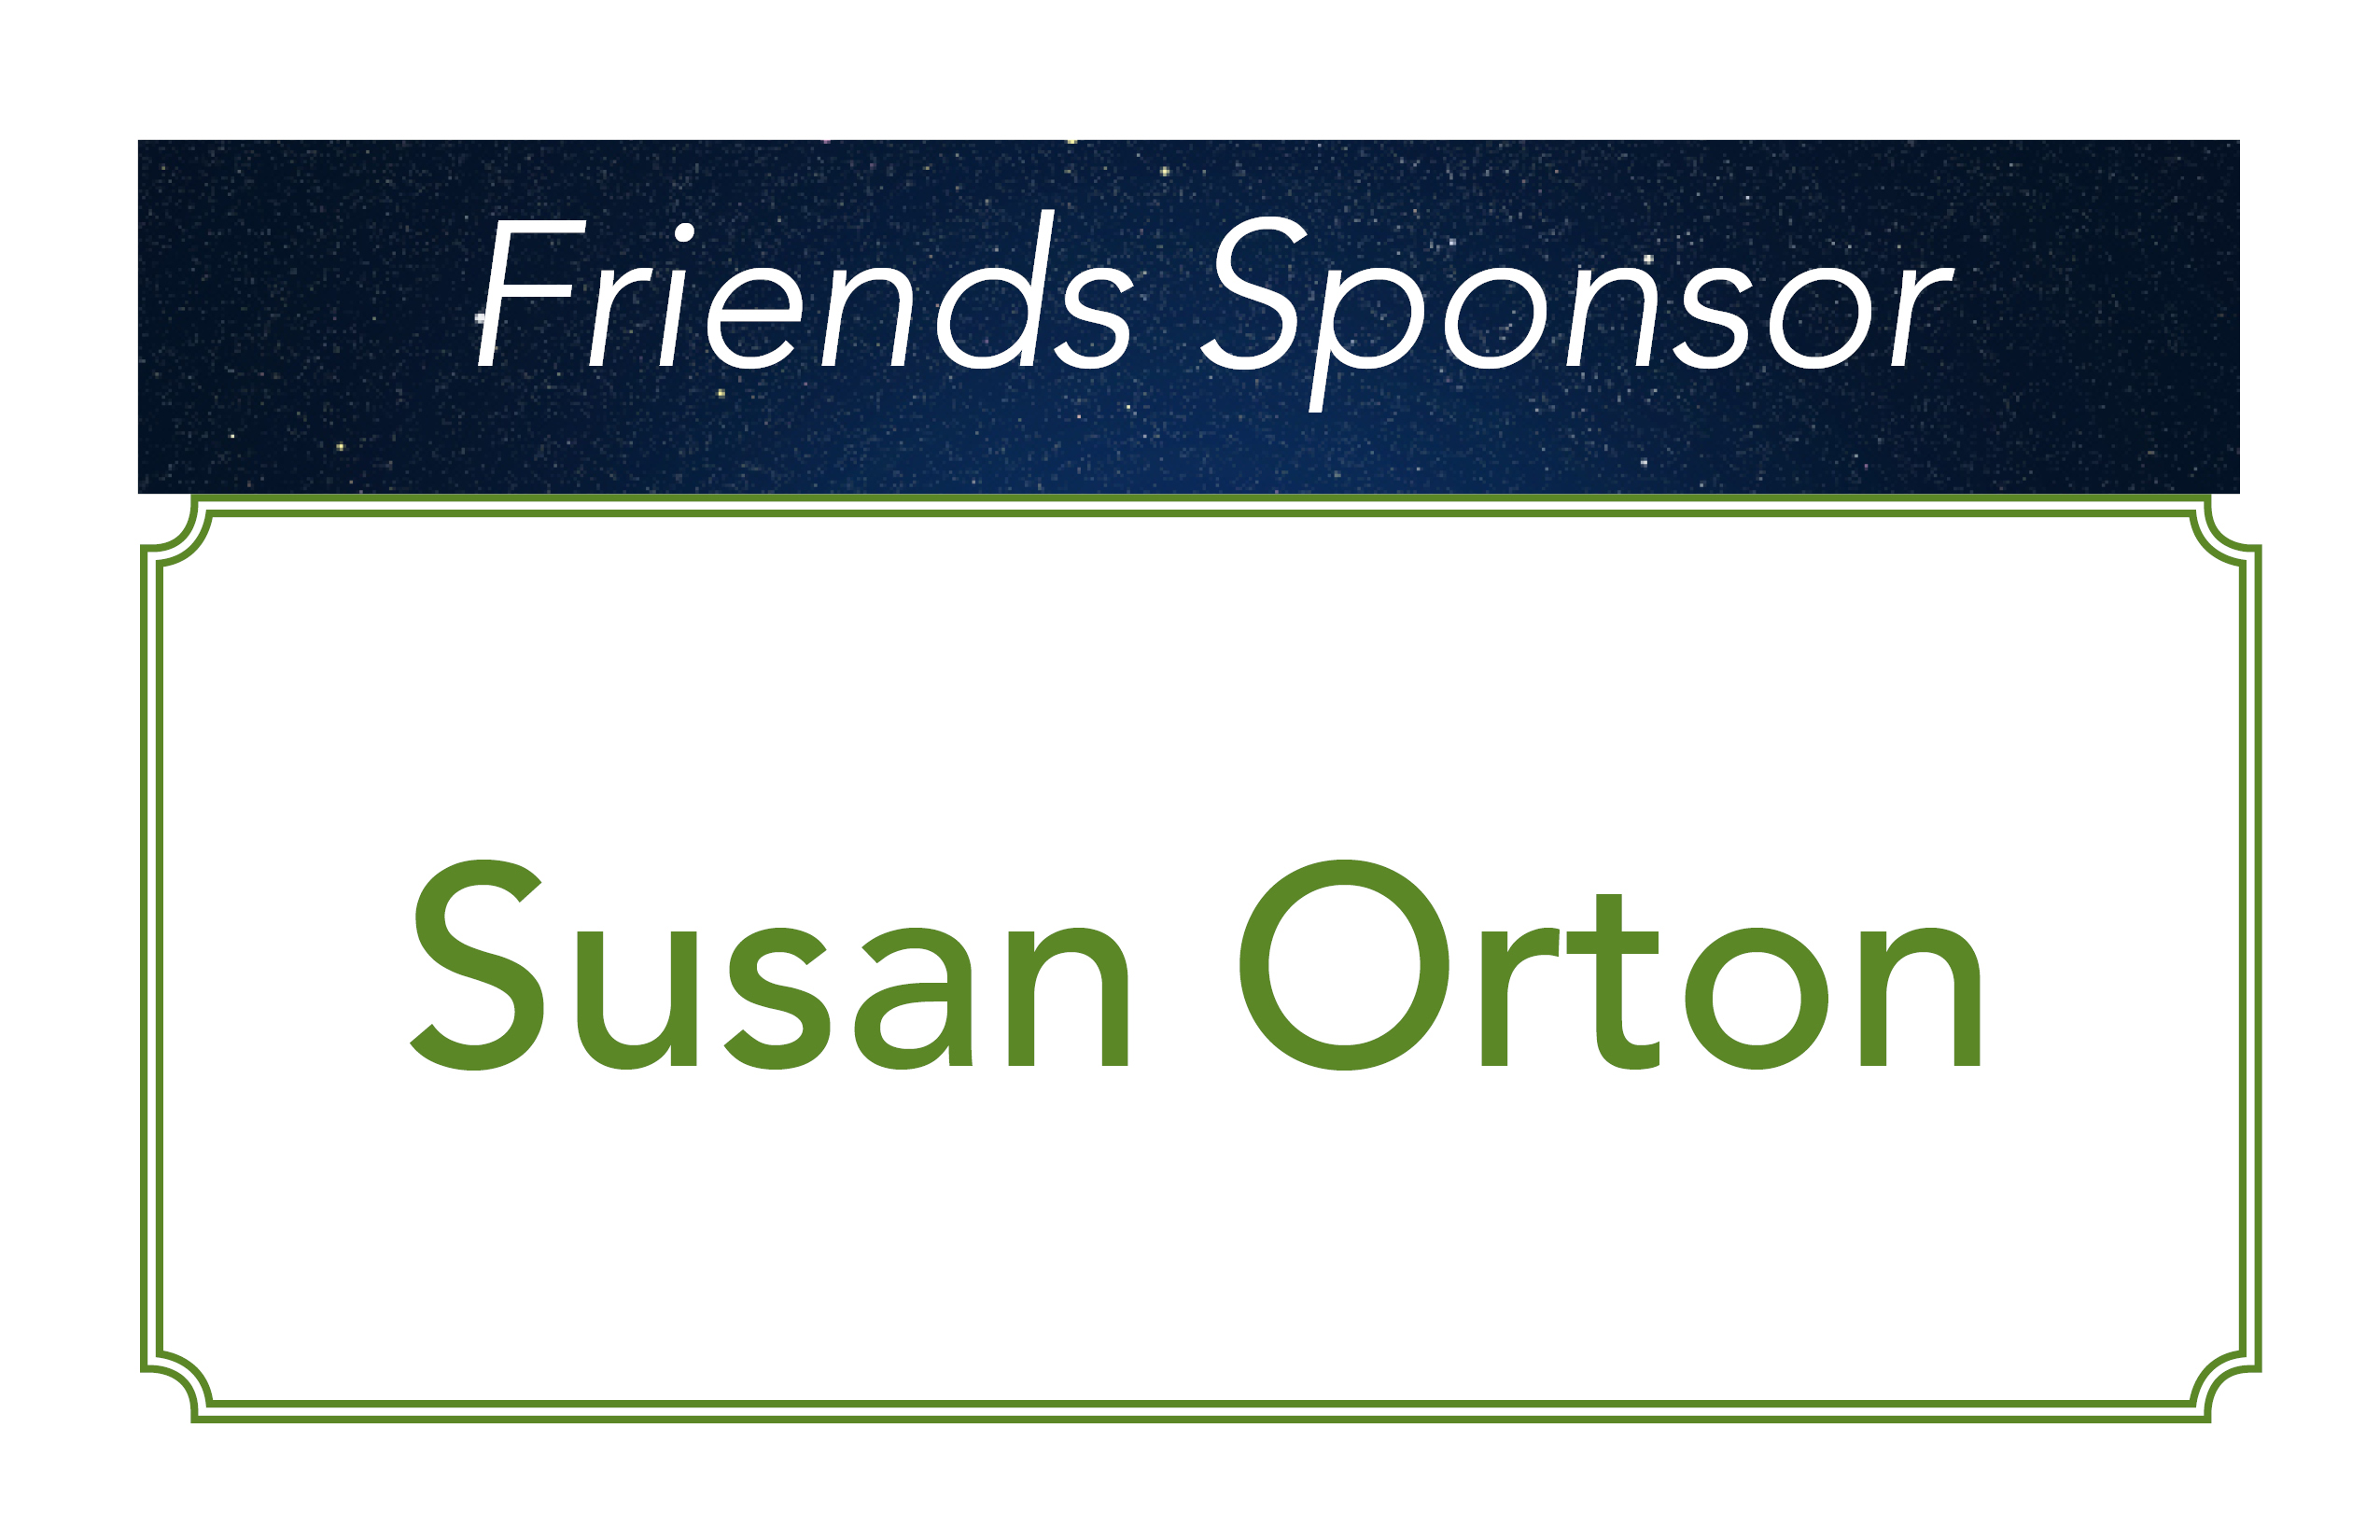 Susan Orton, Friends Sponsor